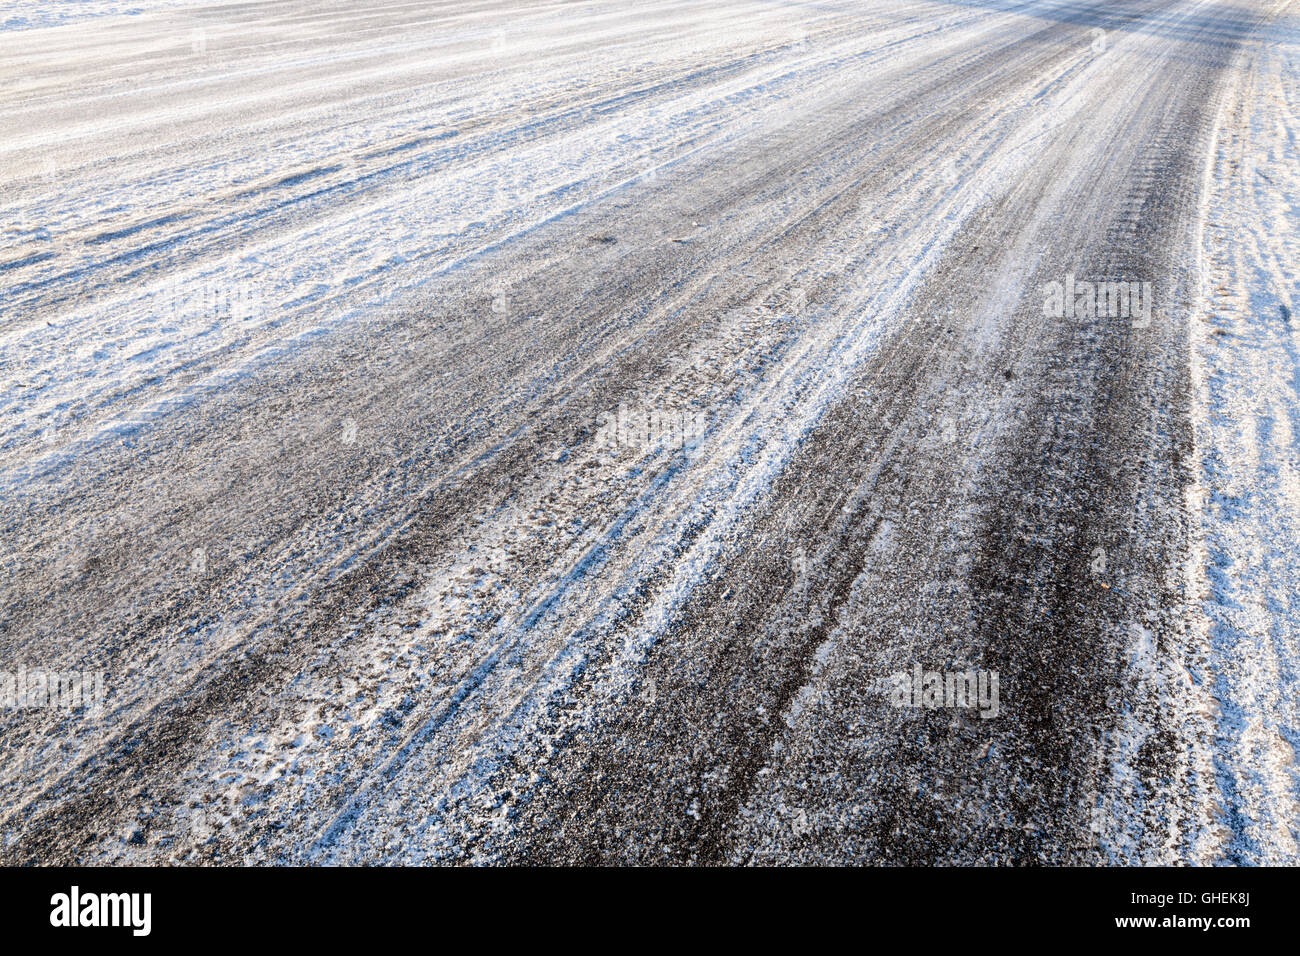 Tyre tracks left in snow and ice on road in Winter, England, UK - Stock Image